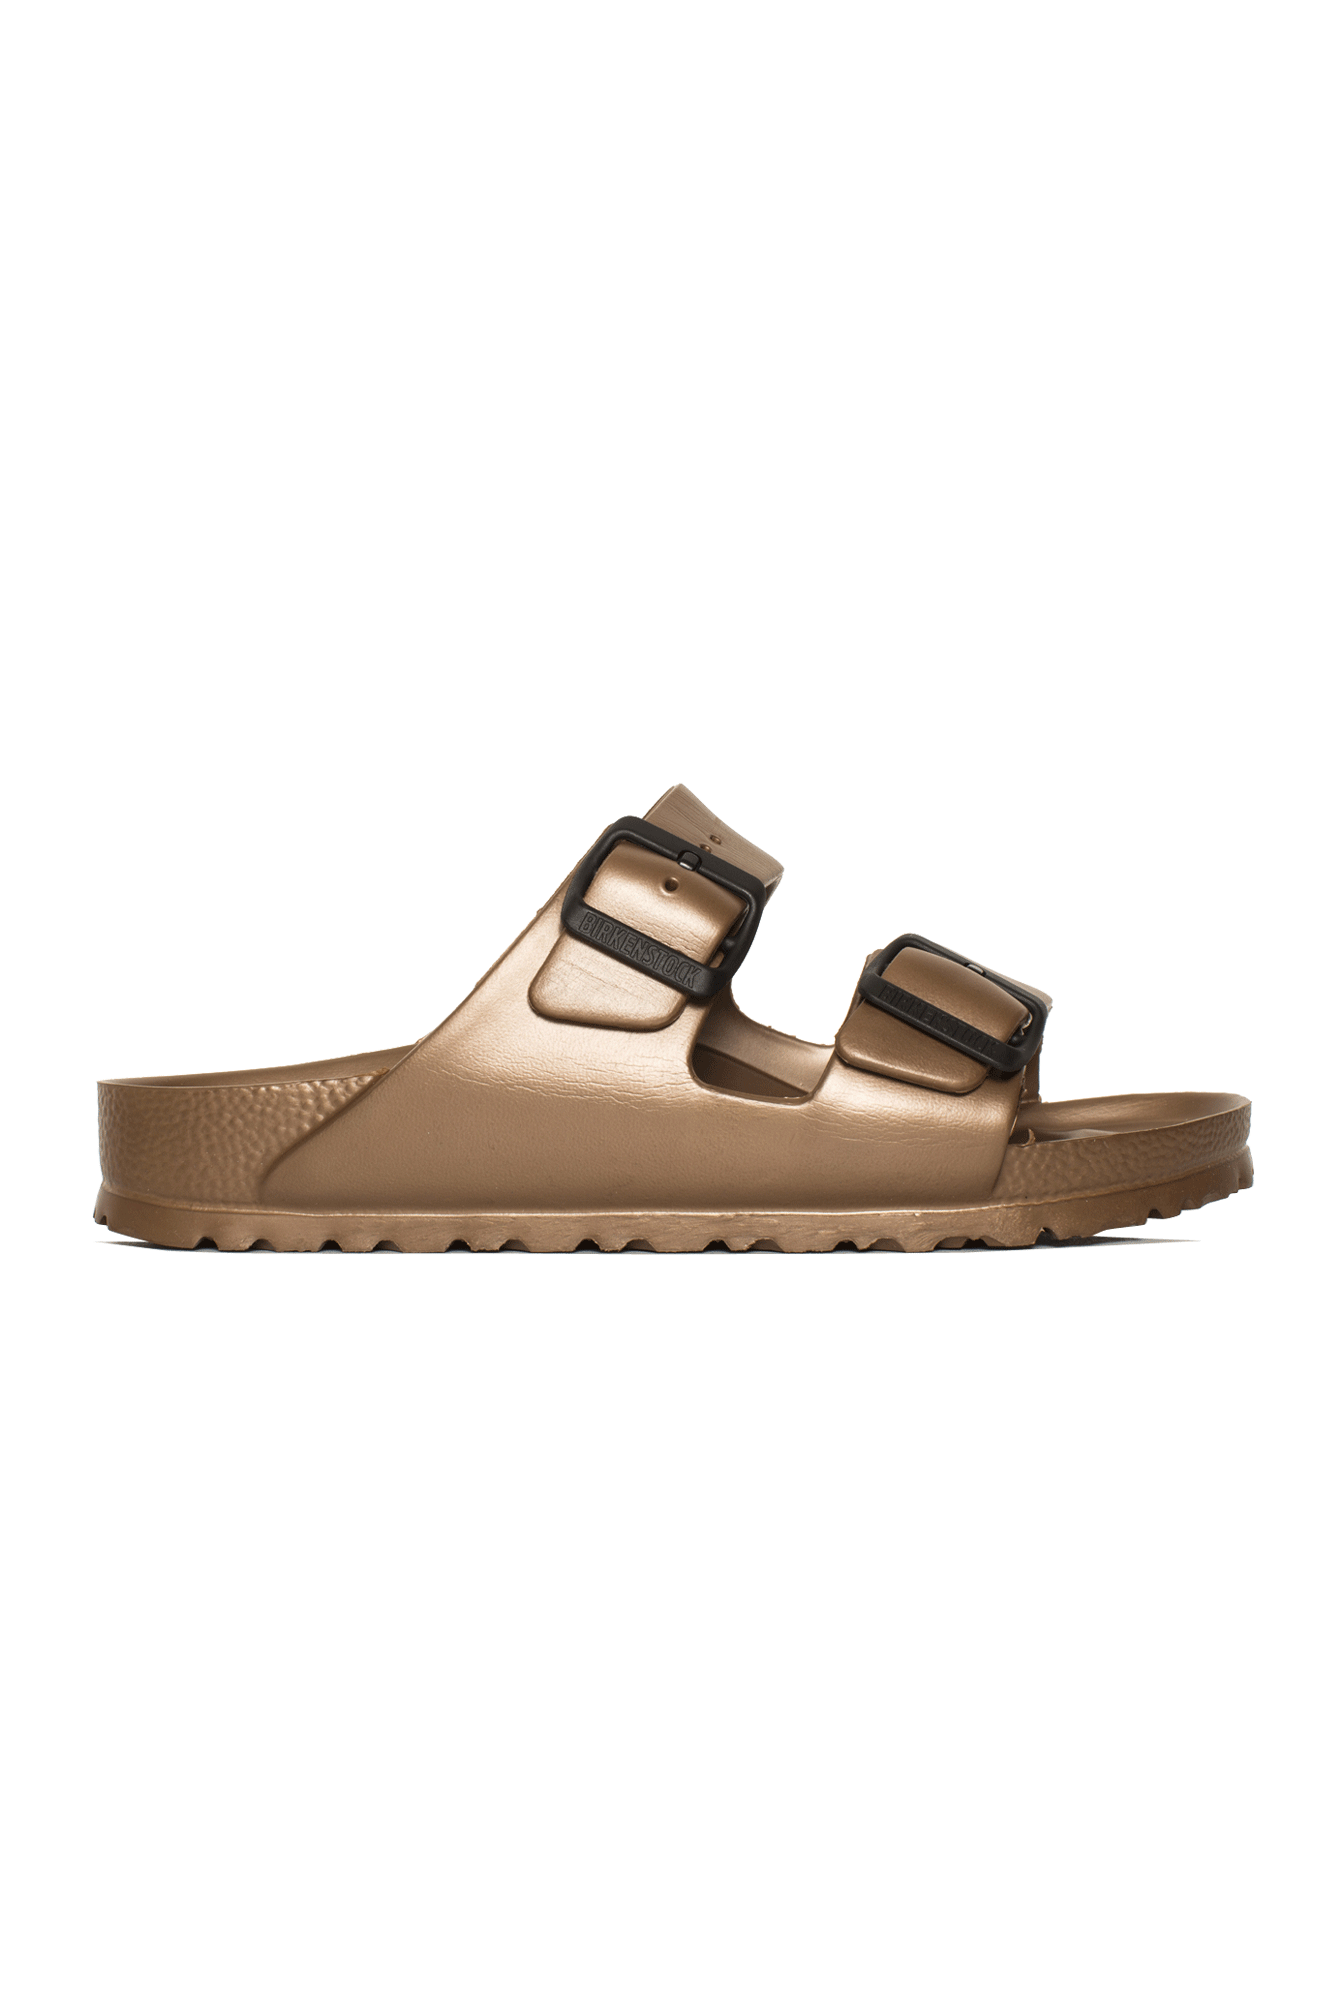 Birkenstock Sandali & Ciabatte Arizona EVA Marrone Marrone - One Block Down